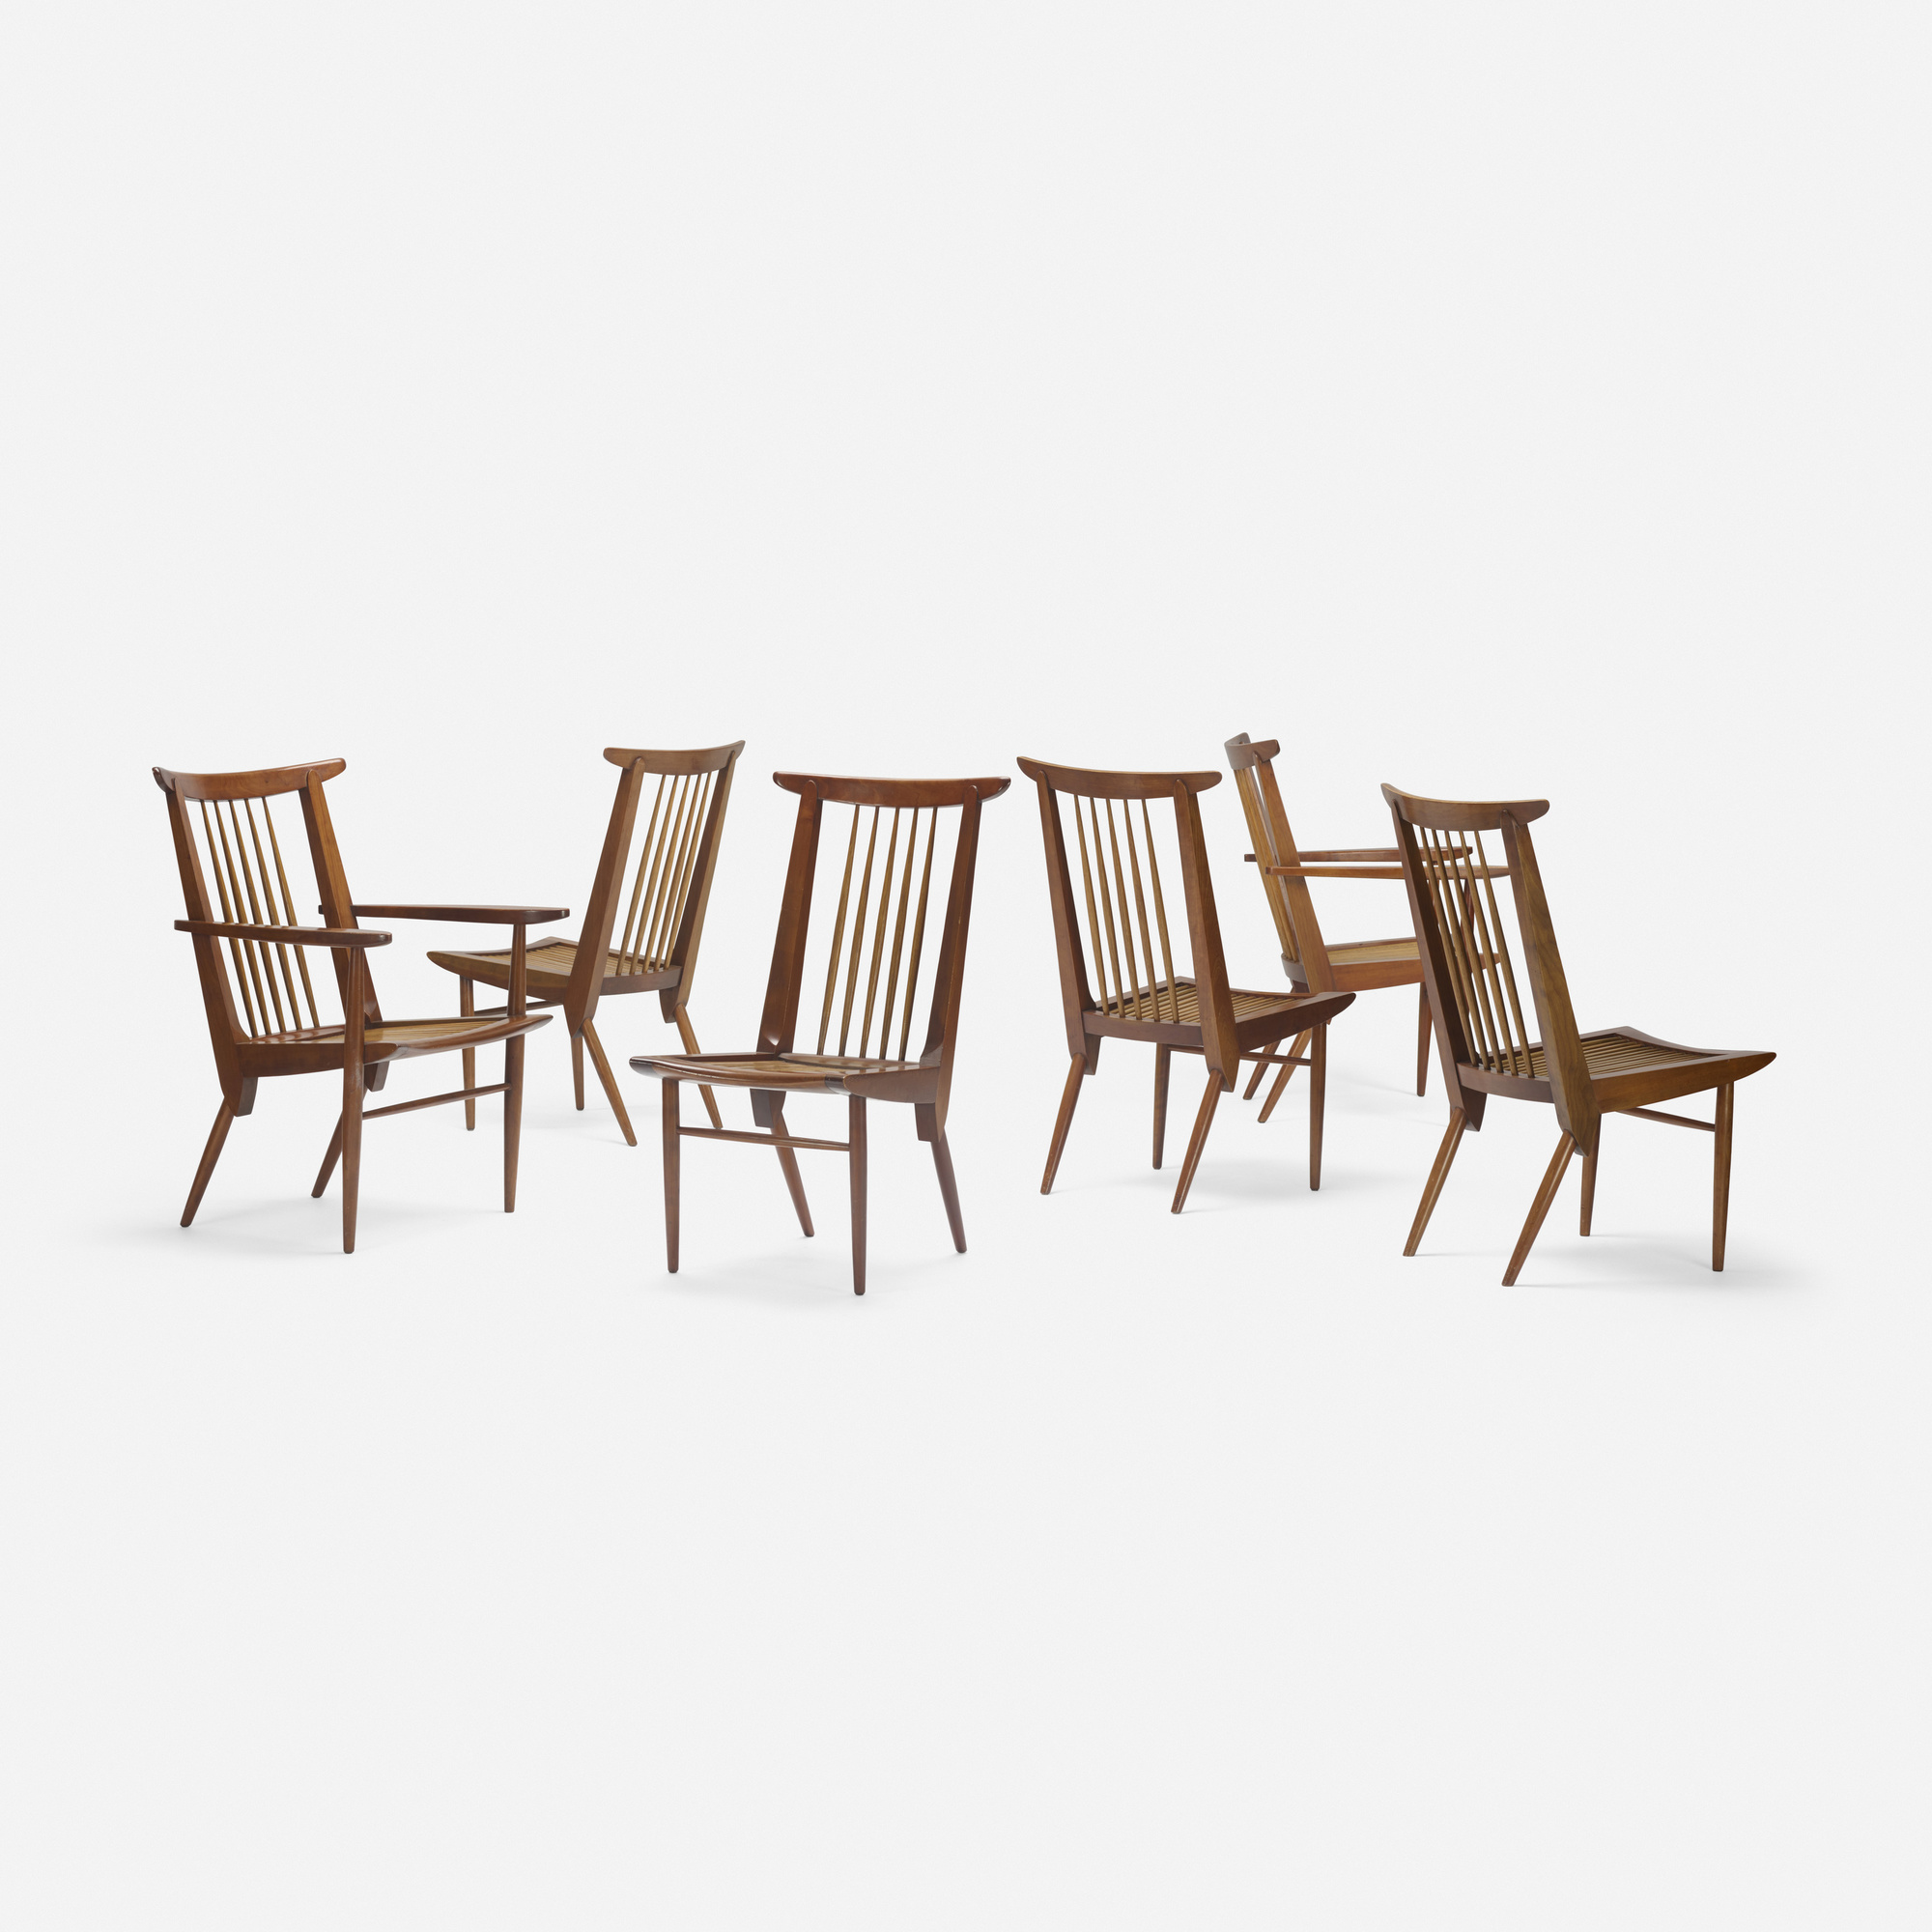 184: George Nakashima / Origins dining chairs model 259-W, set of six (2 of 4)